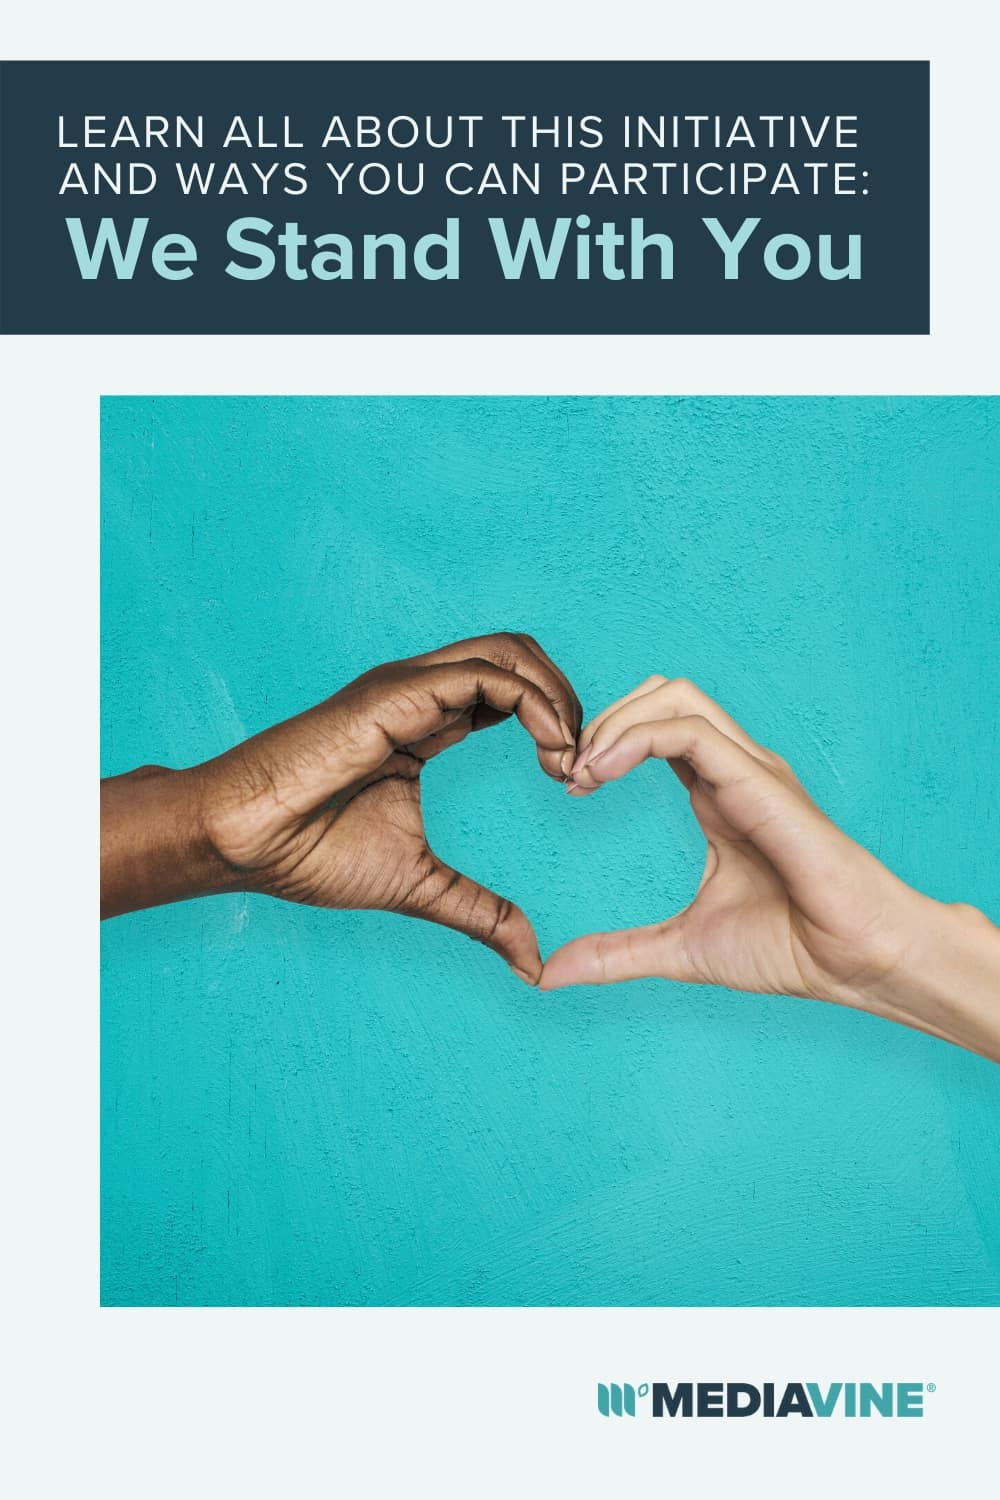 Mediavine Pinterest image - We Stand With You: Learn all about this initiative and ways you can participate